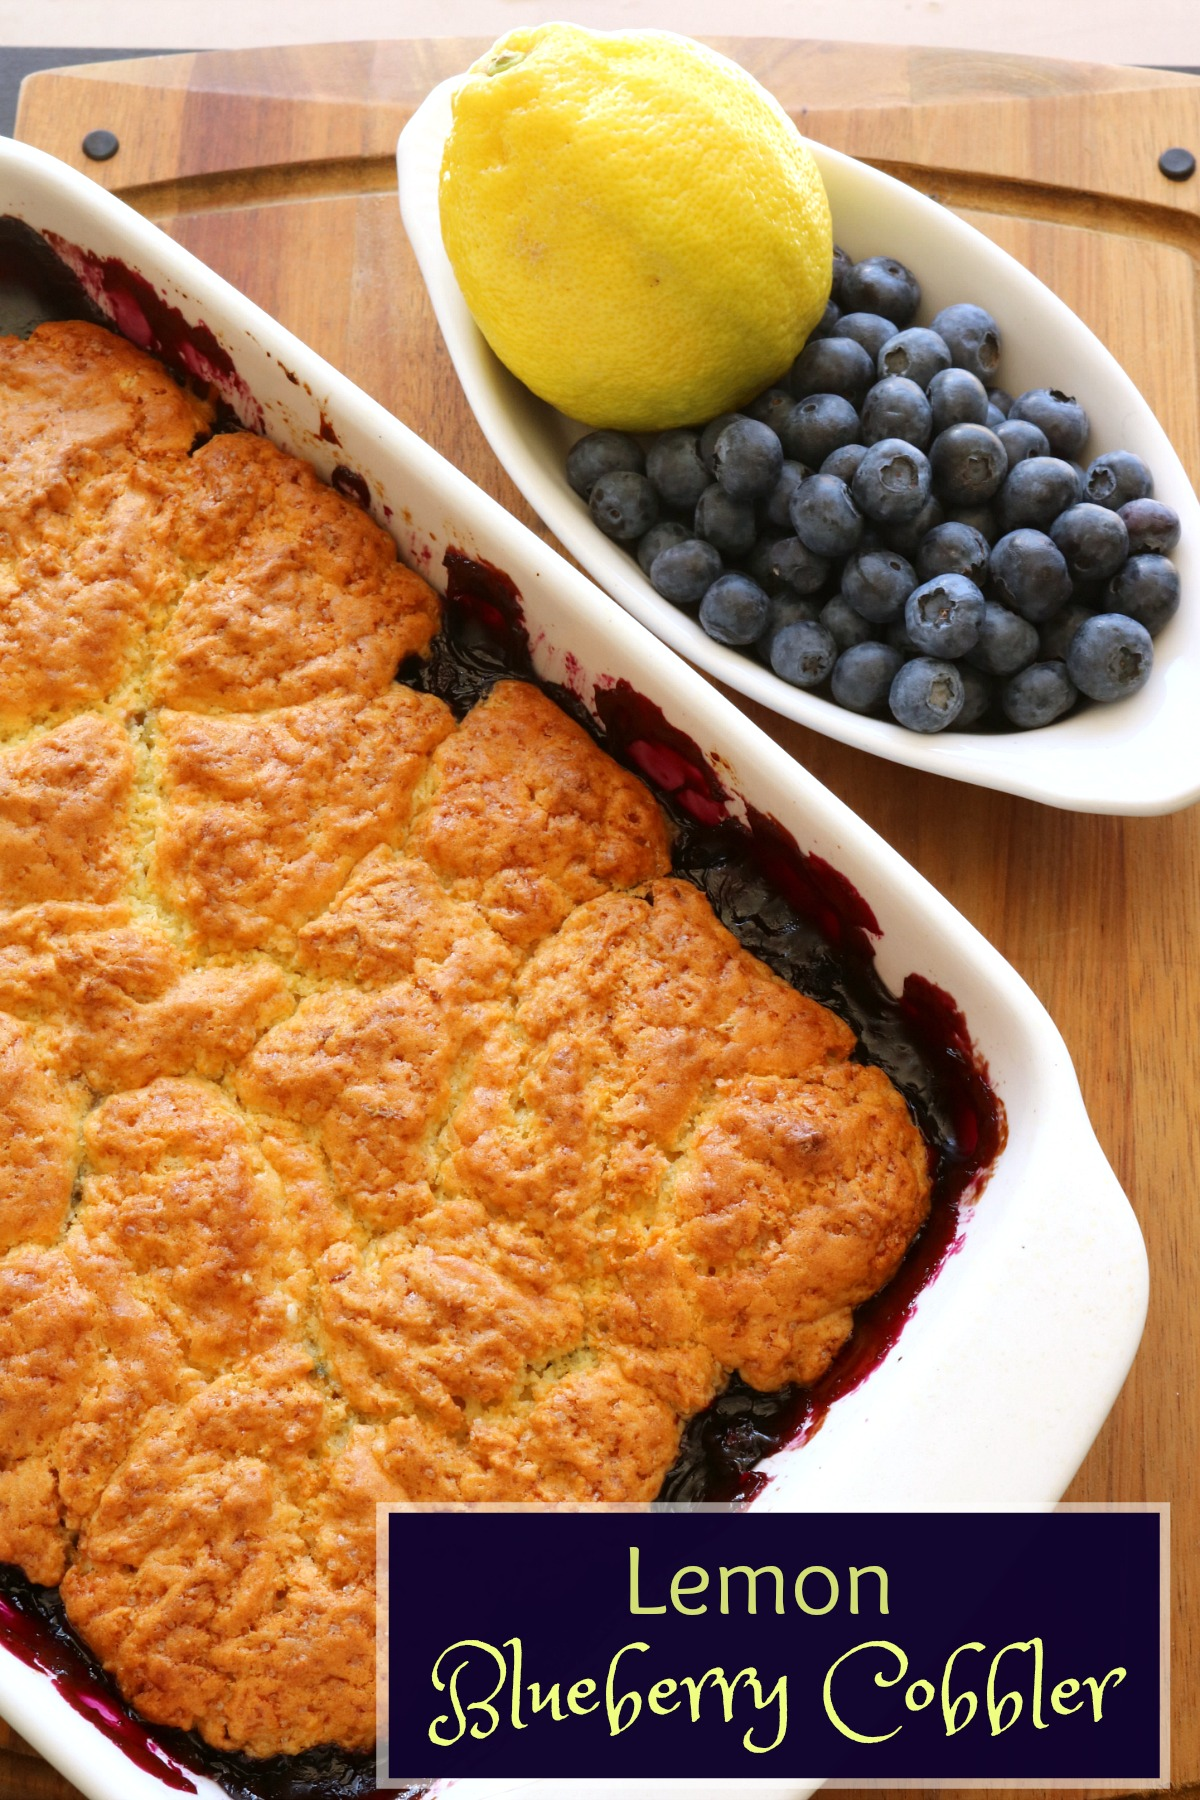 Lemon Blueberry Cobbler Recipe from 5DollarDinners.com